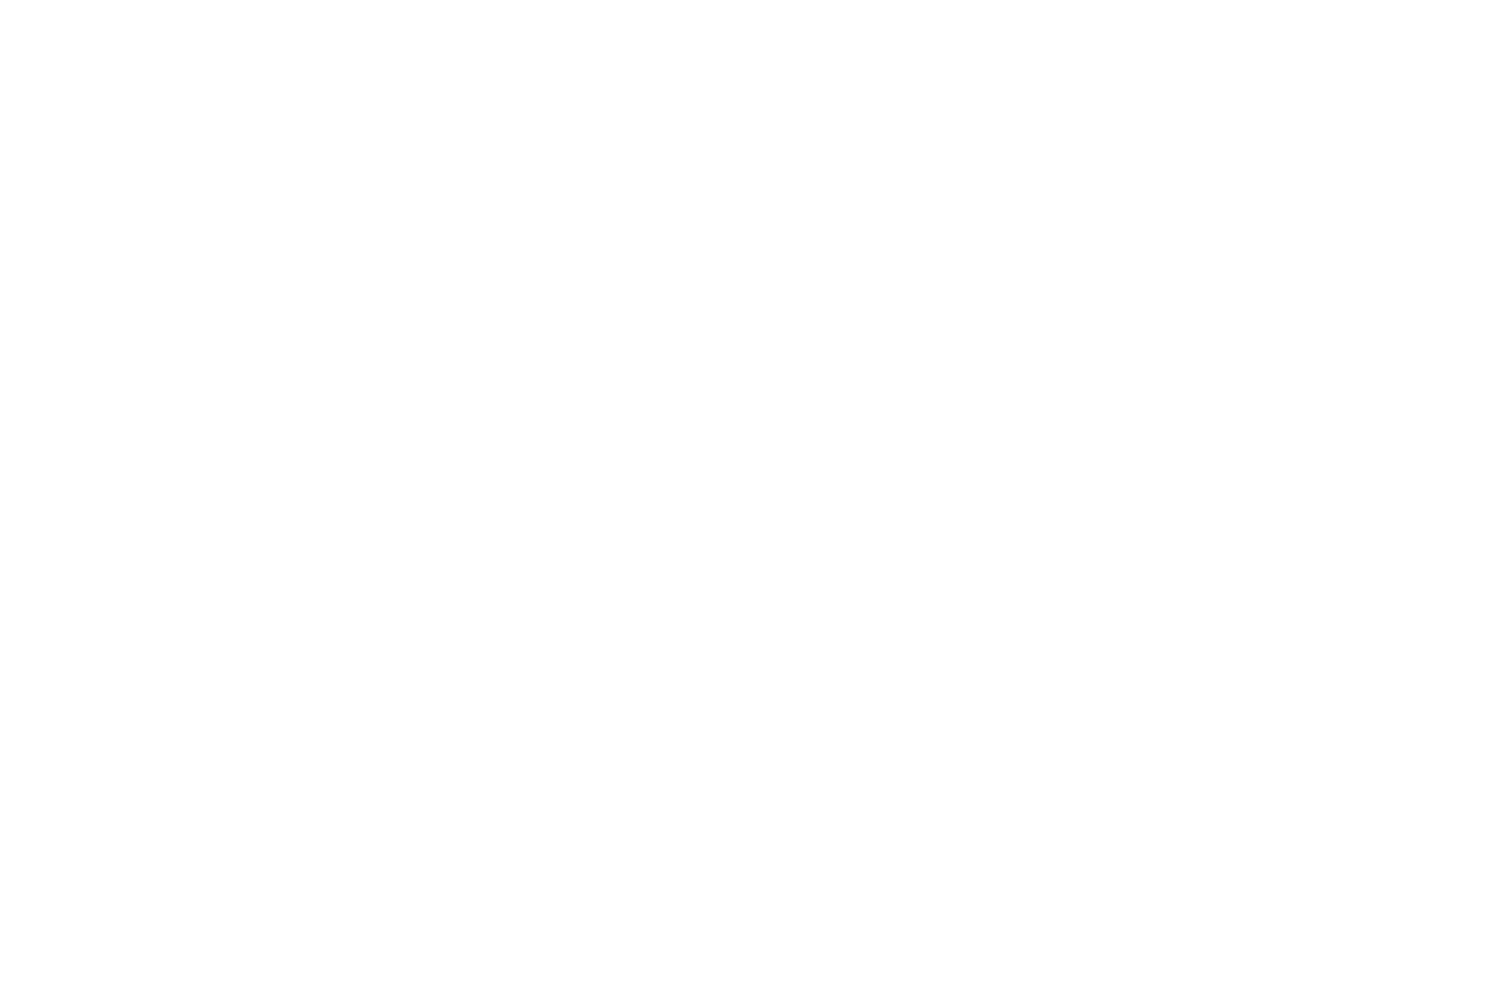 Premier Business Centres